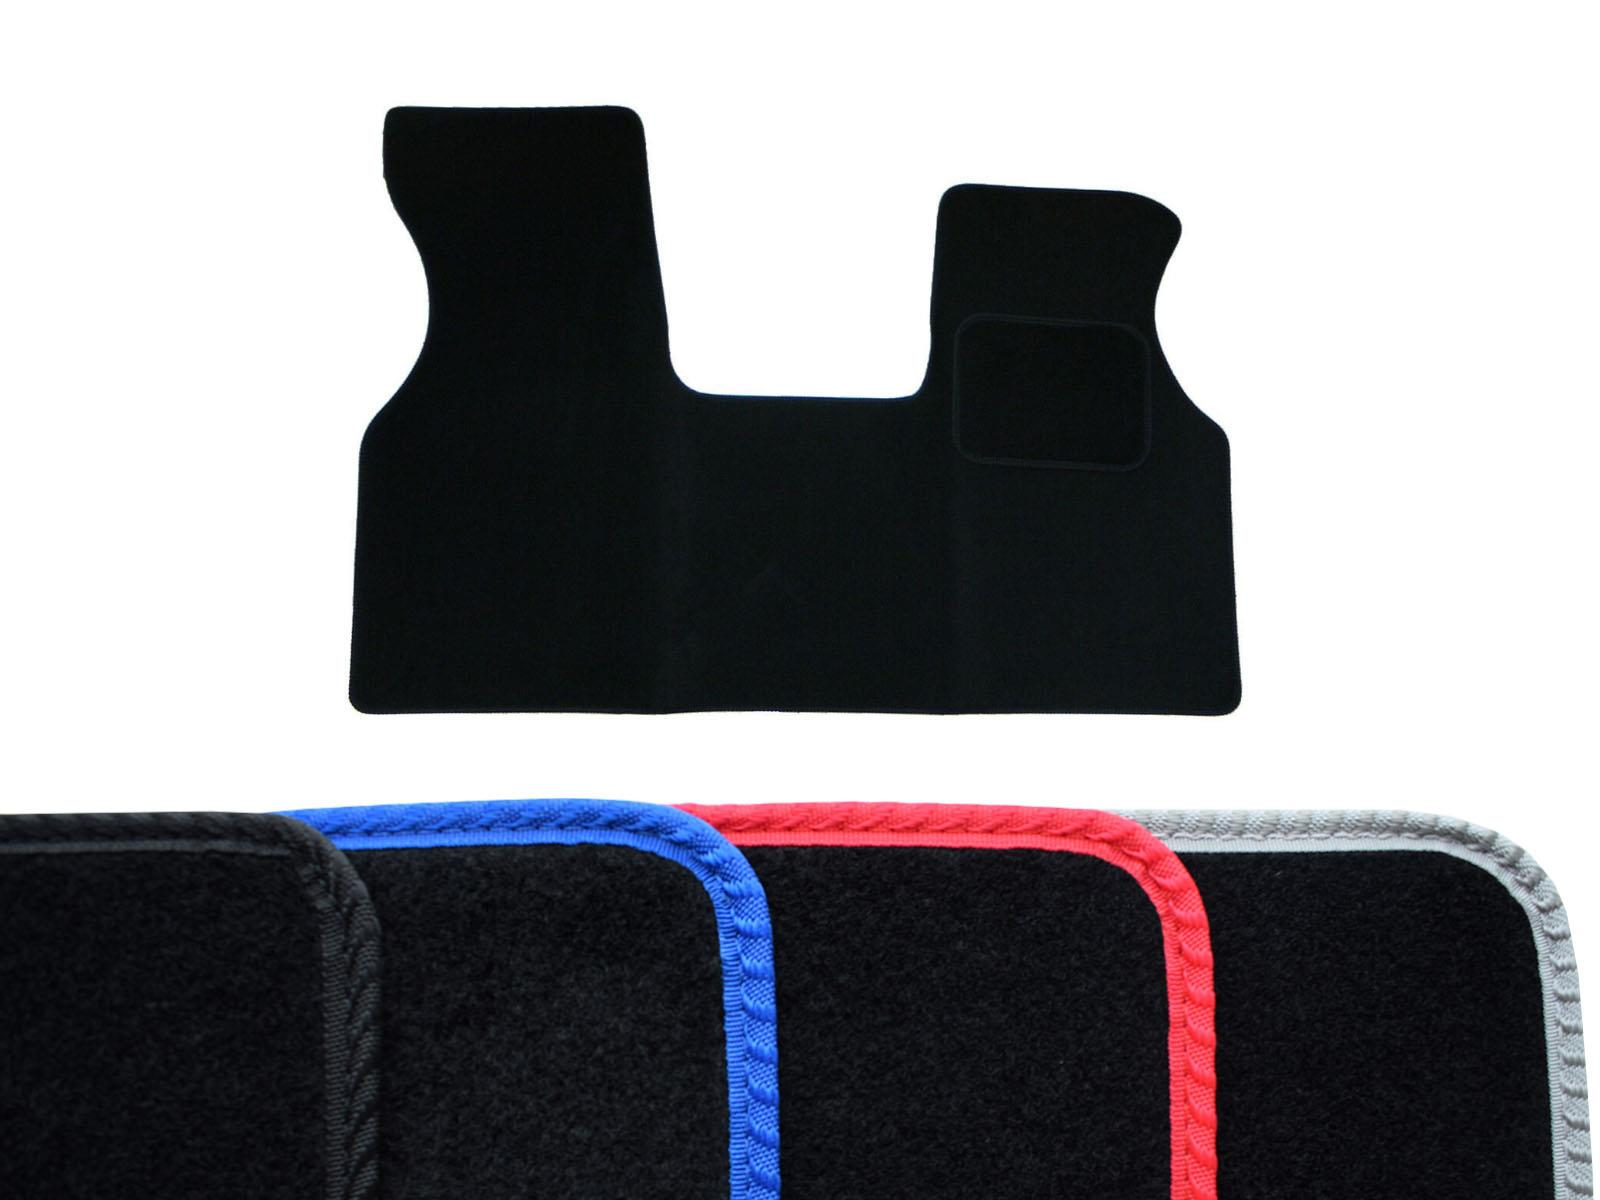 Details about Tailored 1pc Black Carpet Floor Mat Colour Trim for VW Transporter T4 (90 03)